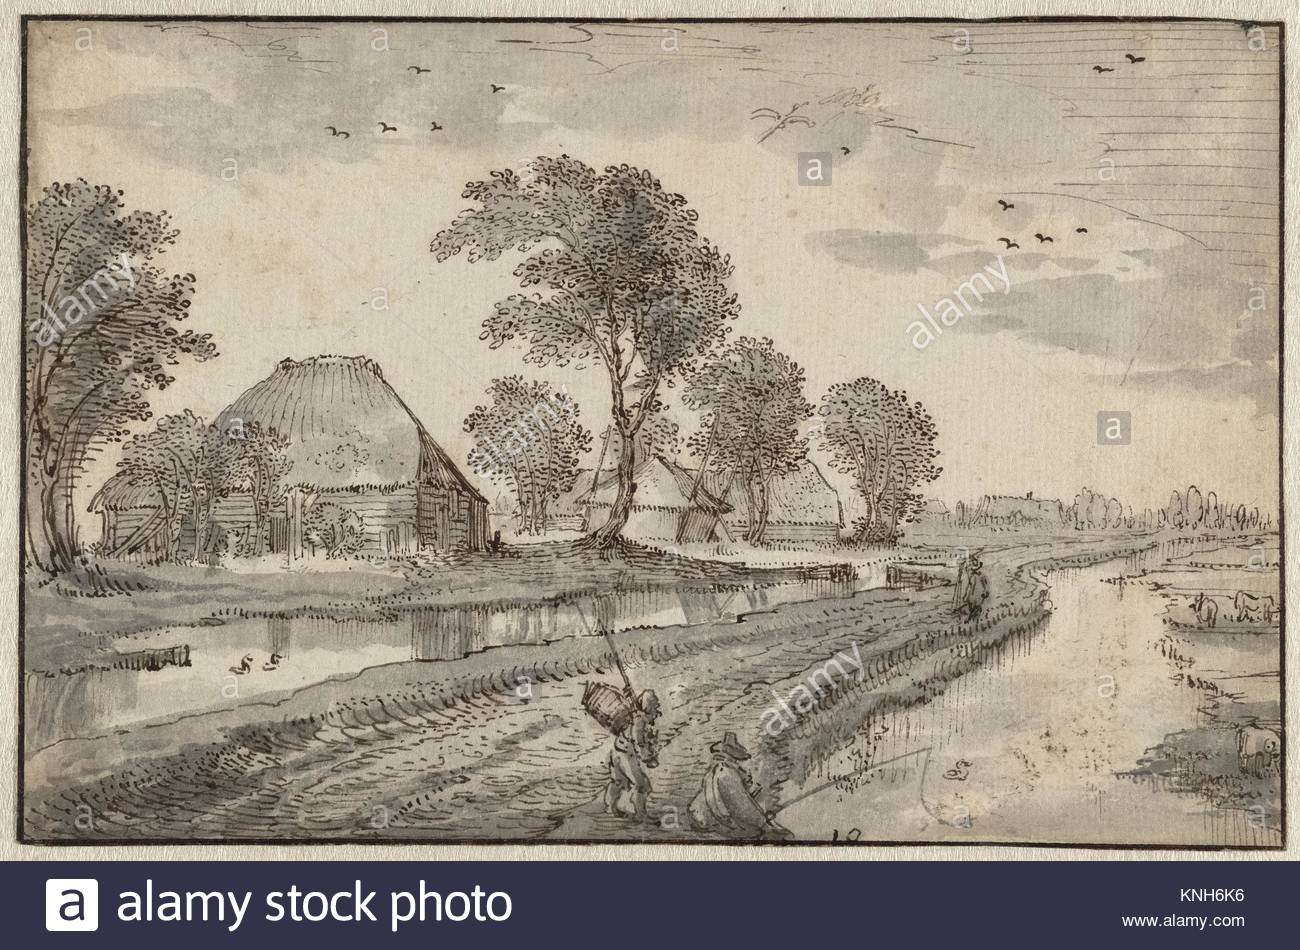 Road between ditches in a polder with farms and trees, Claes Jansz. Visscher (II), ca. 1615 - ca. 1620 - Stock Image